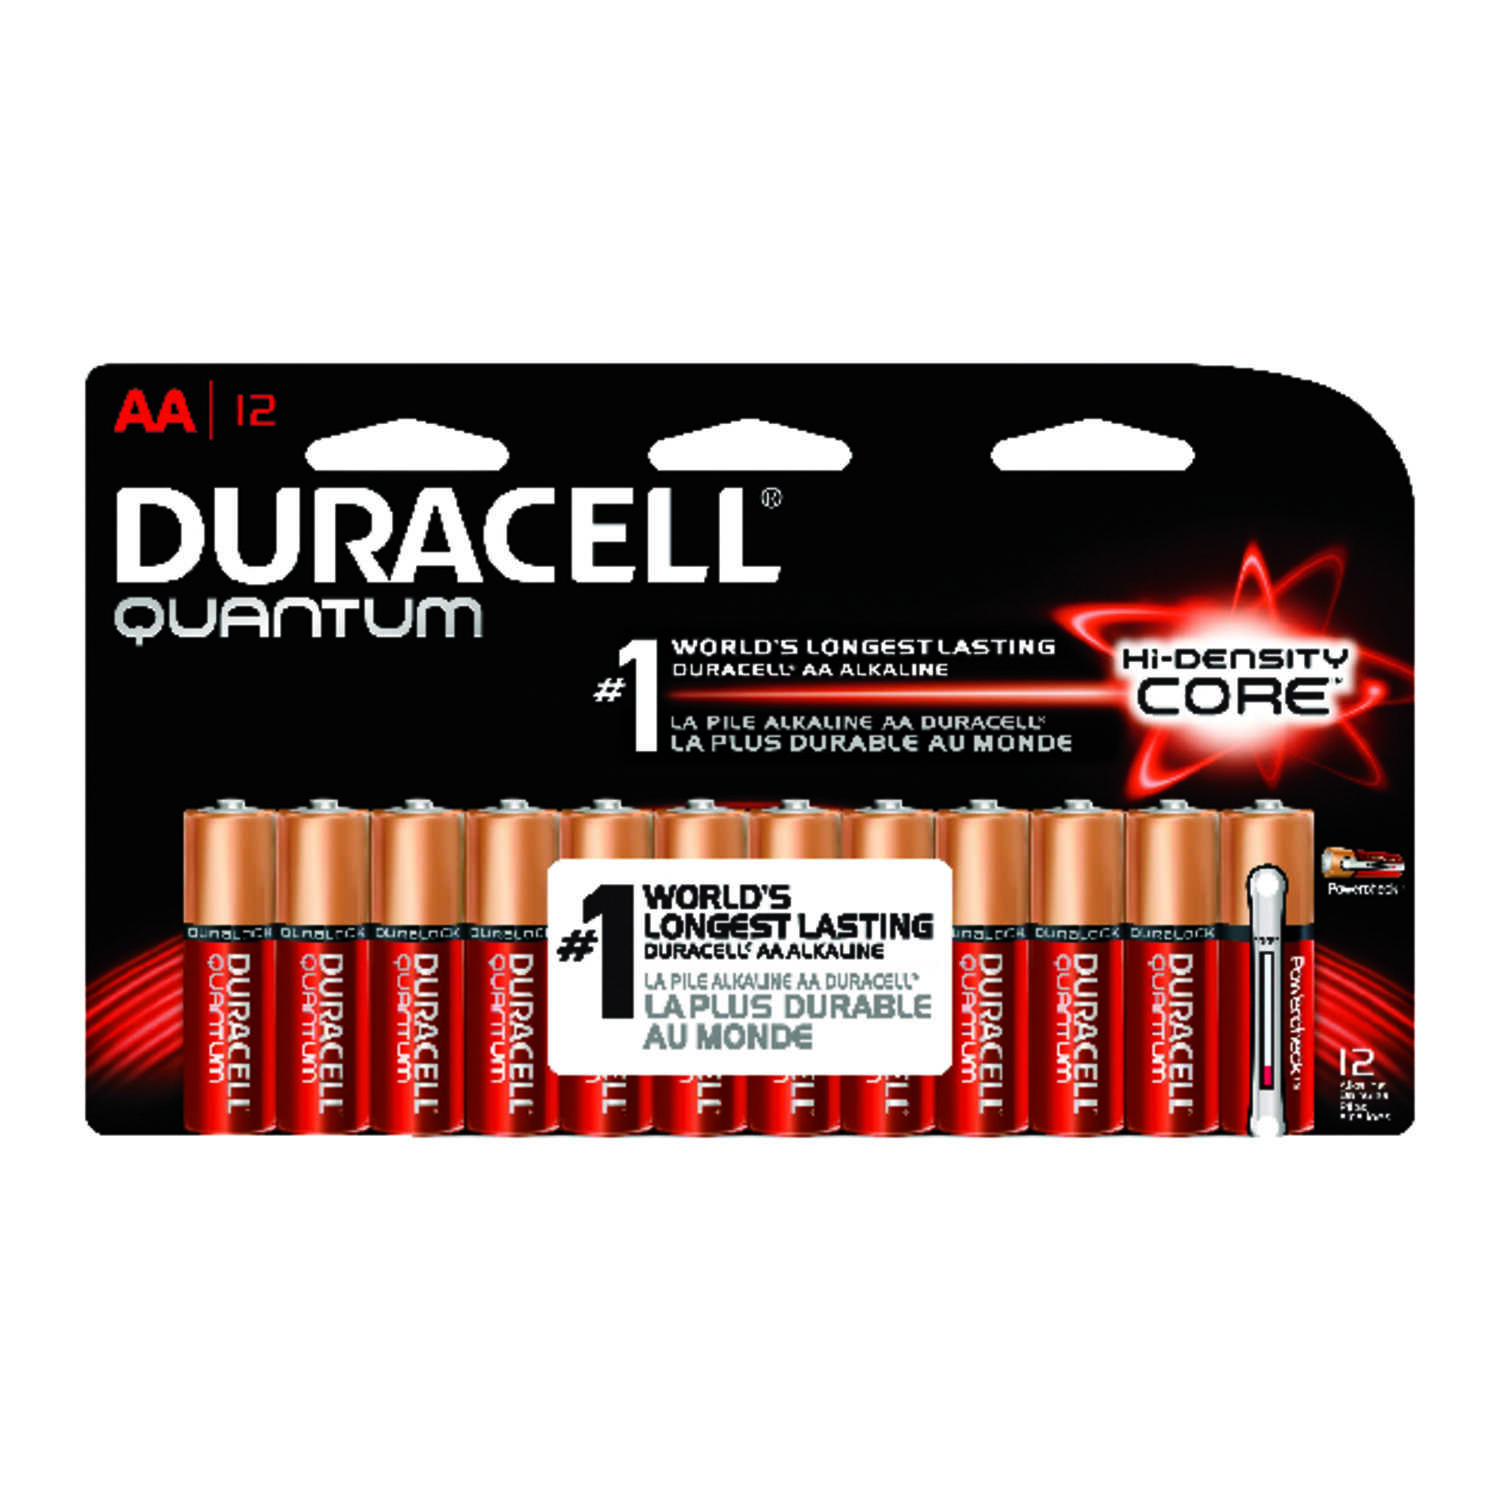 Duracell  Quantum  AA  Alkaline  Batteries  1.5 volts Carded  12 pk